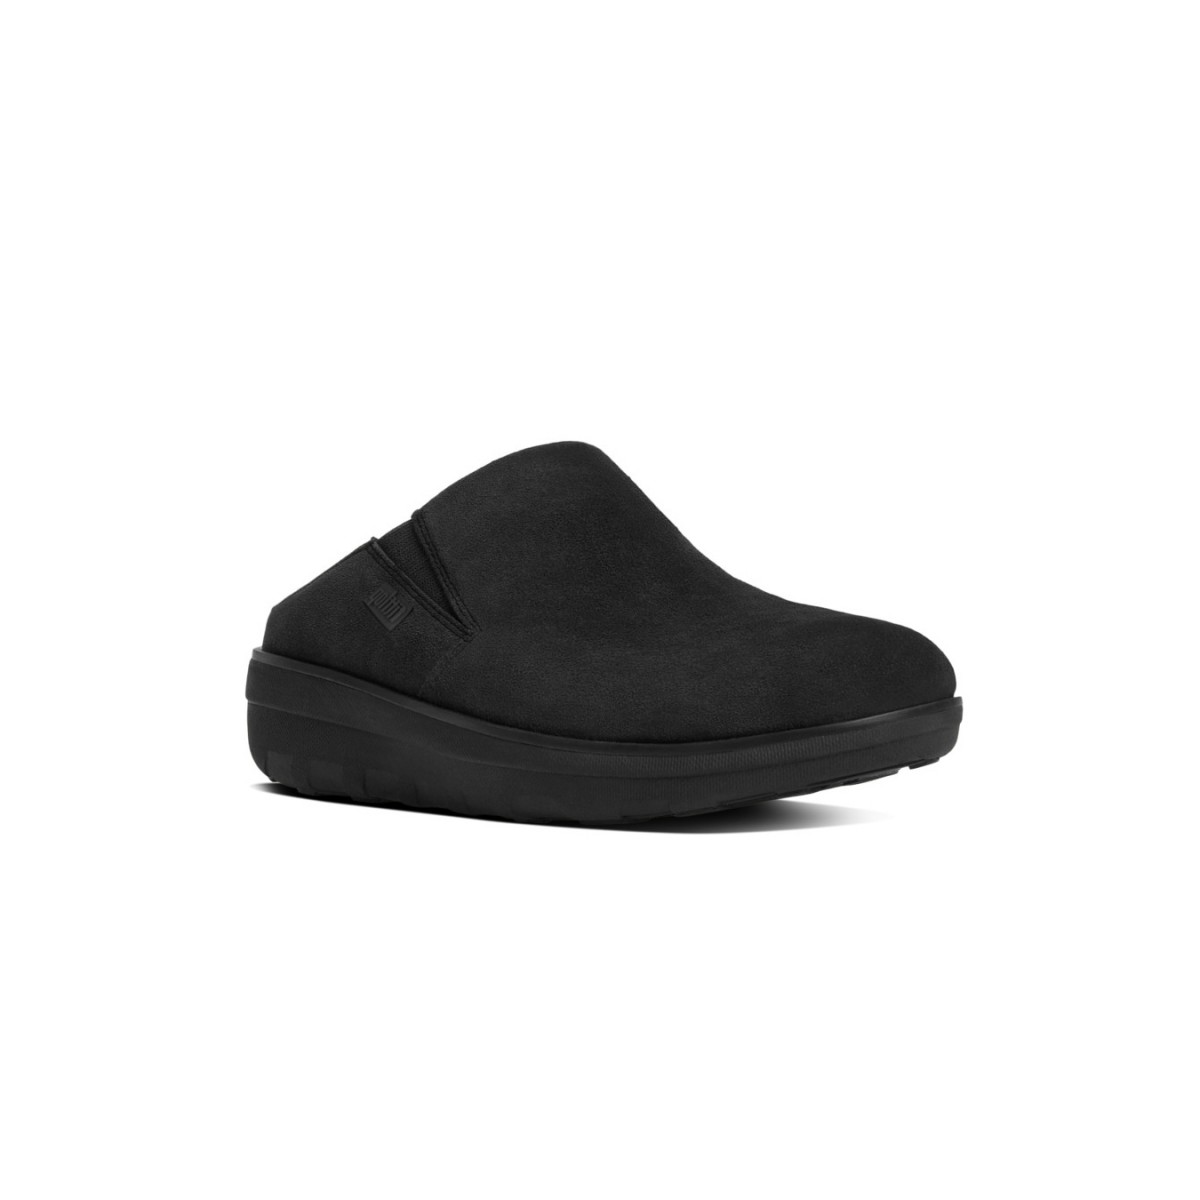 FitFlop Loaf Clogs Black-32